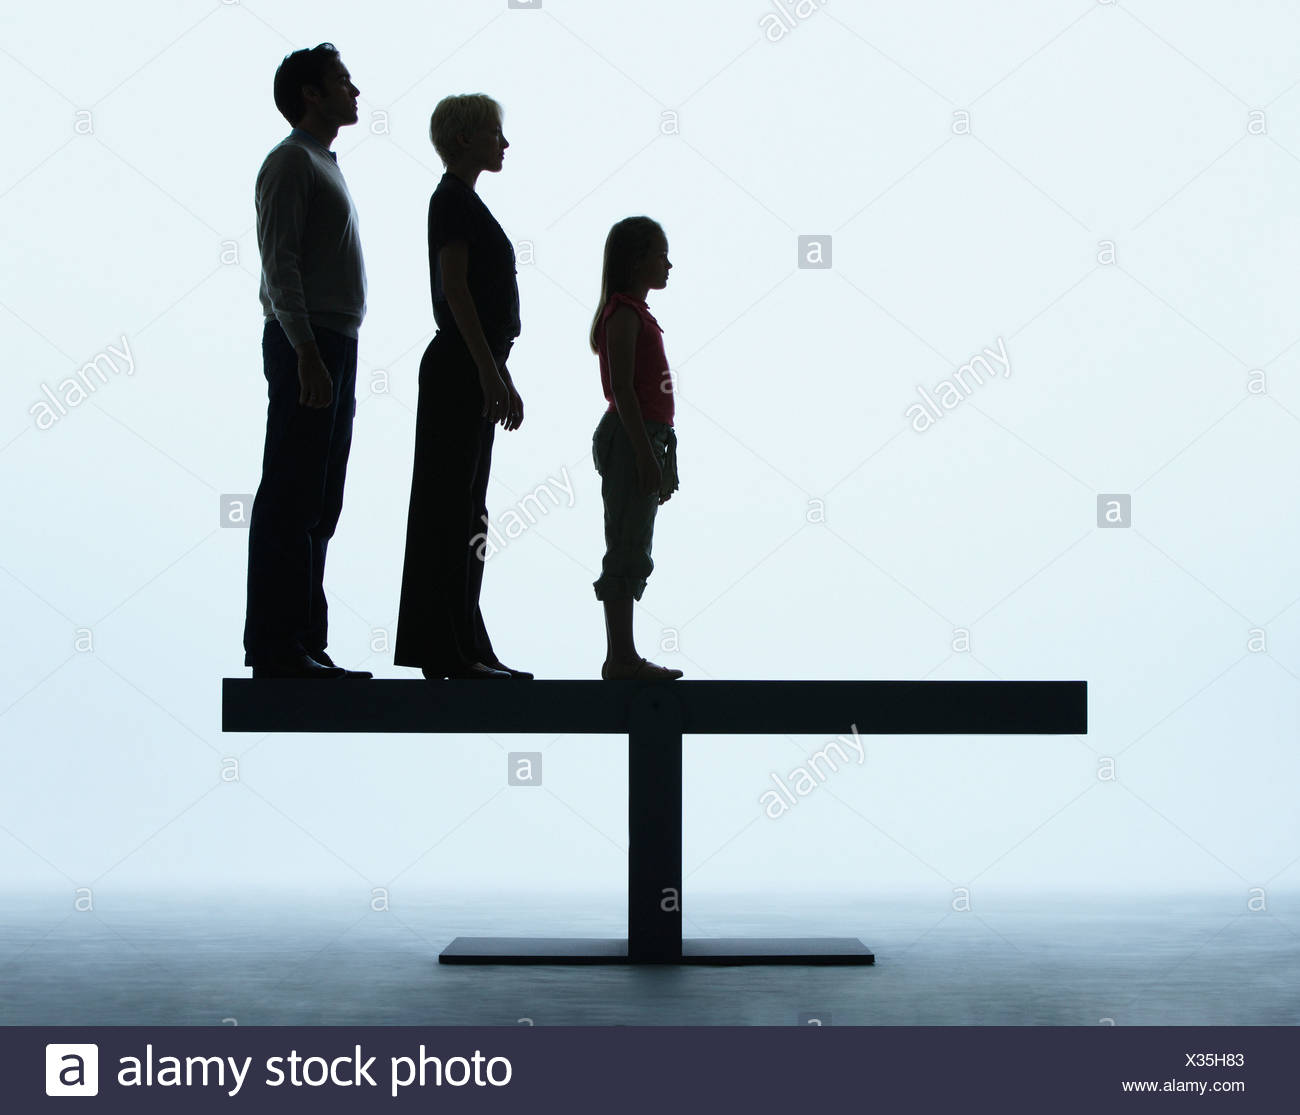 Couple and young girl standing in a line on a plank - Stock Image